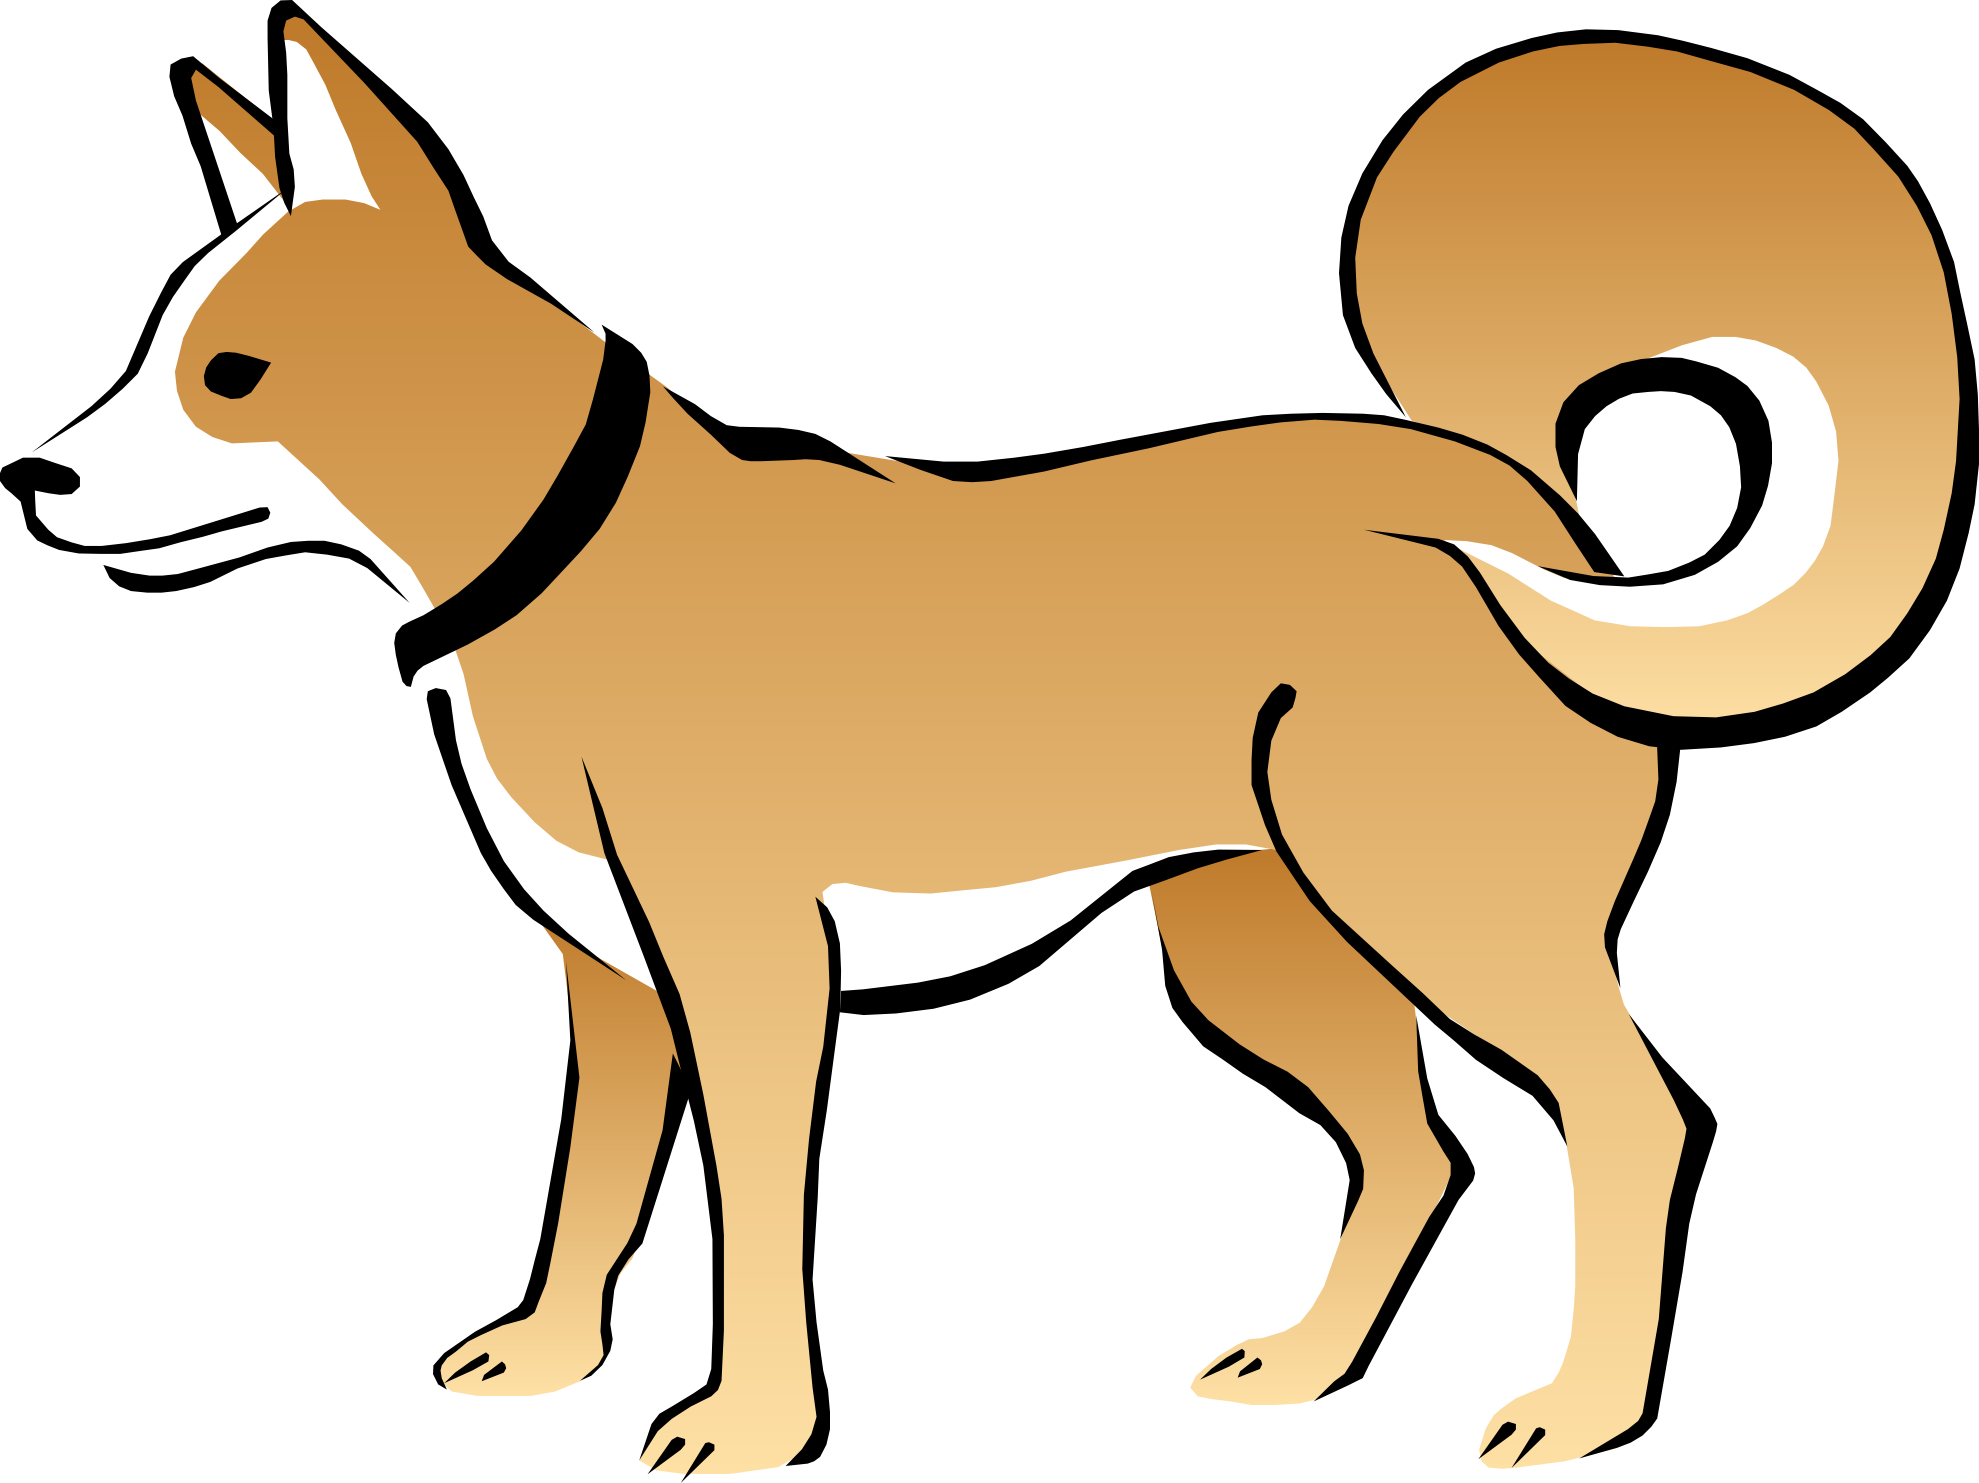 Png Dogs Free Images 2